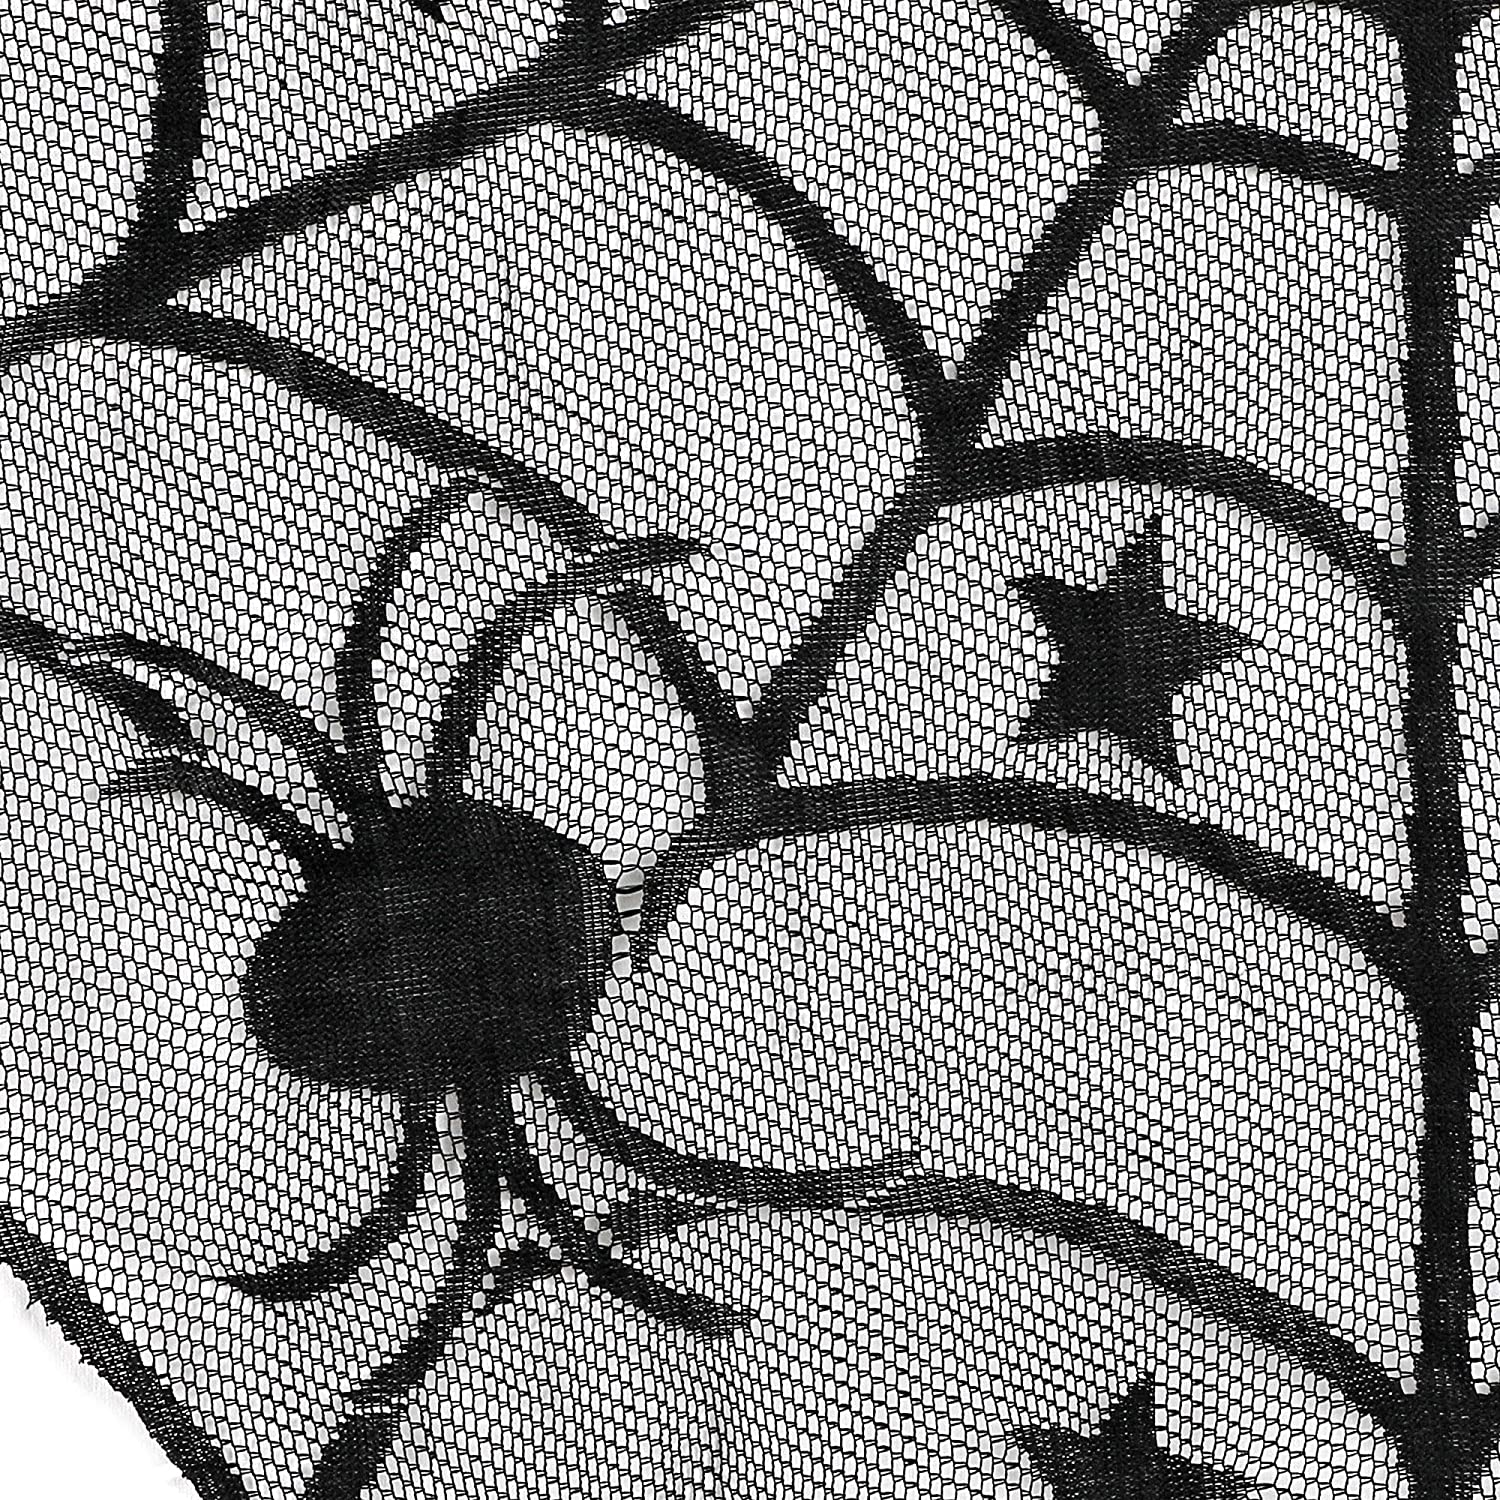 HOWAF 18 x 96 inch Cobweb Fireplace Scarf Lace Spiderweb Mantle Lace Runner and 40 inch Round Lace Spiderweb Table Topper Cloth for Table Door Window Halloween Decoration Party Supplies